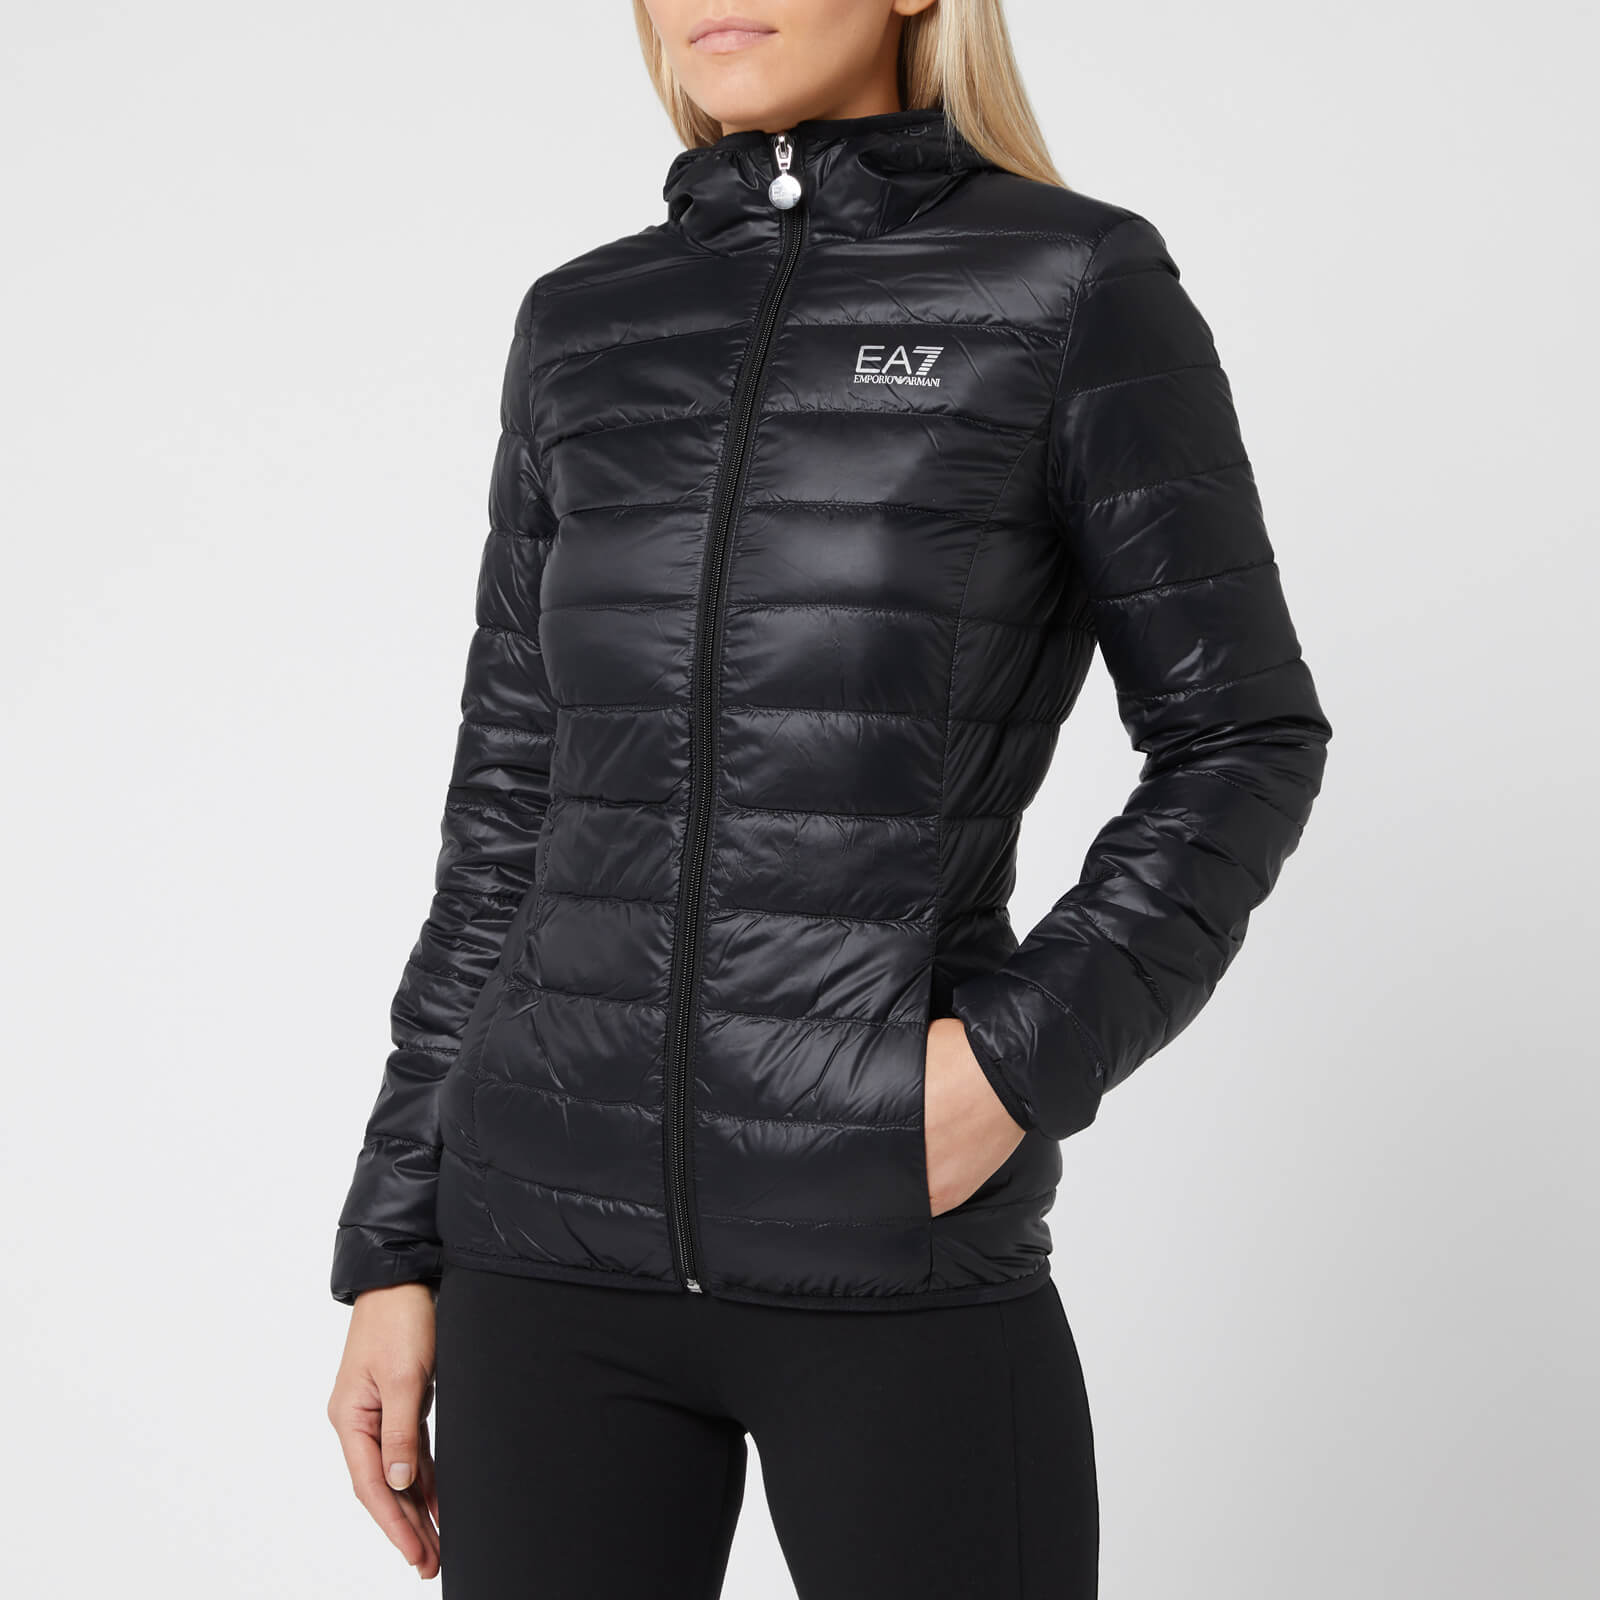 a323f8d4 Emporio Armani EA7 Women's Train Core Lady Light Down Packable Jacket -  Black